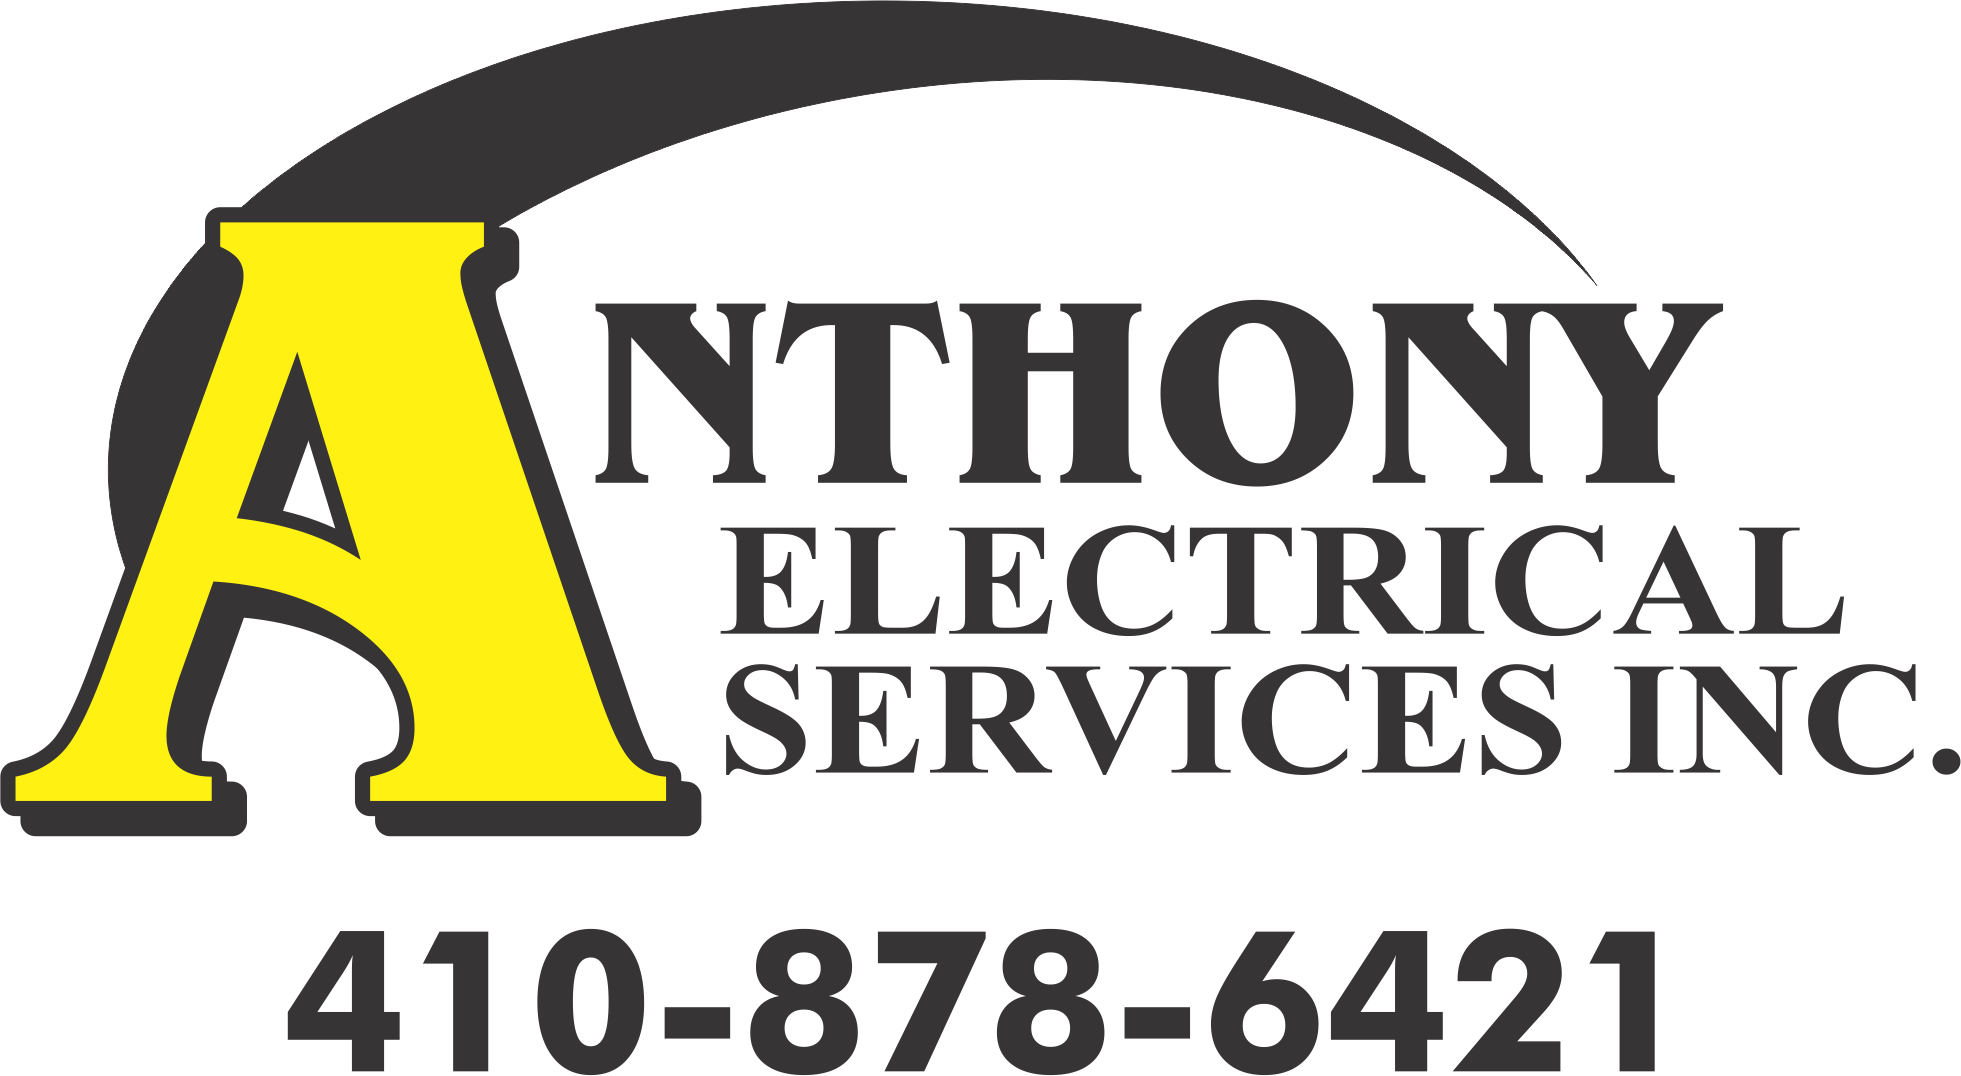 Anthony's Electrical Services